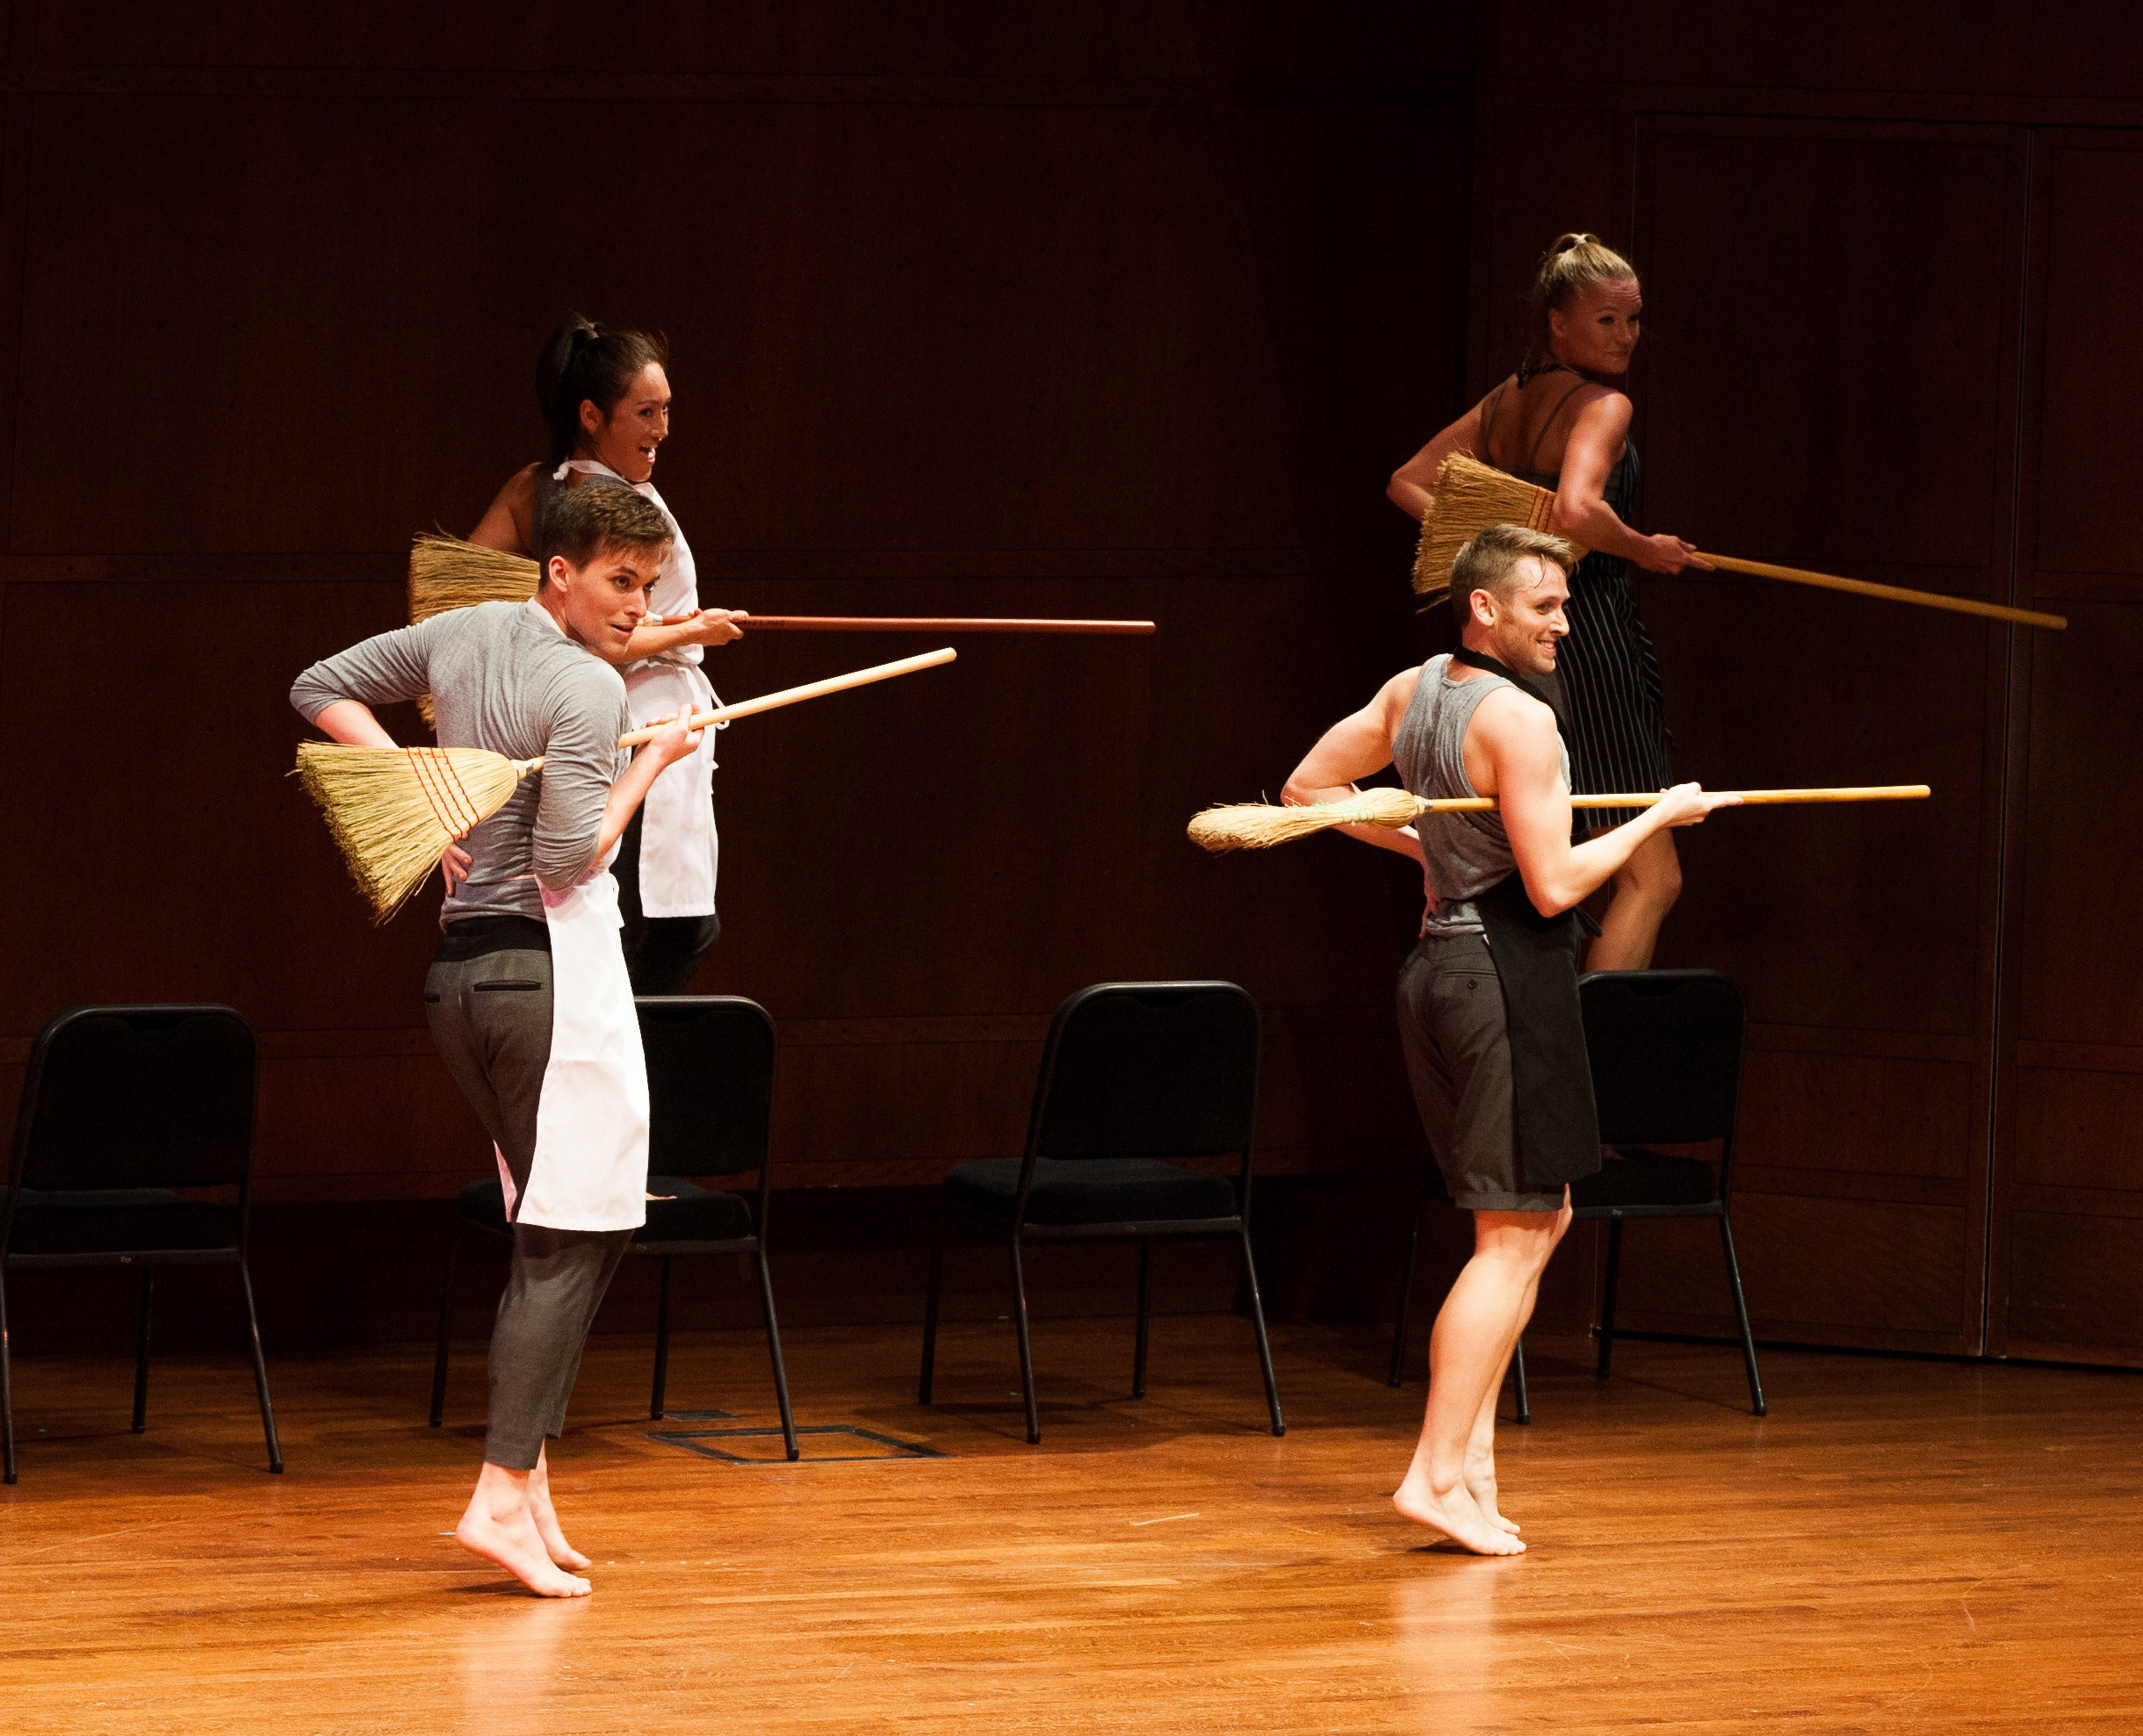 Tory Peil, Kyle Johnson, Thomas Phelan, Lara Seefeldt; Whim W'Him Contemporary Dance Company